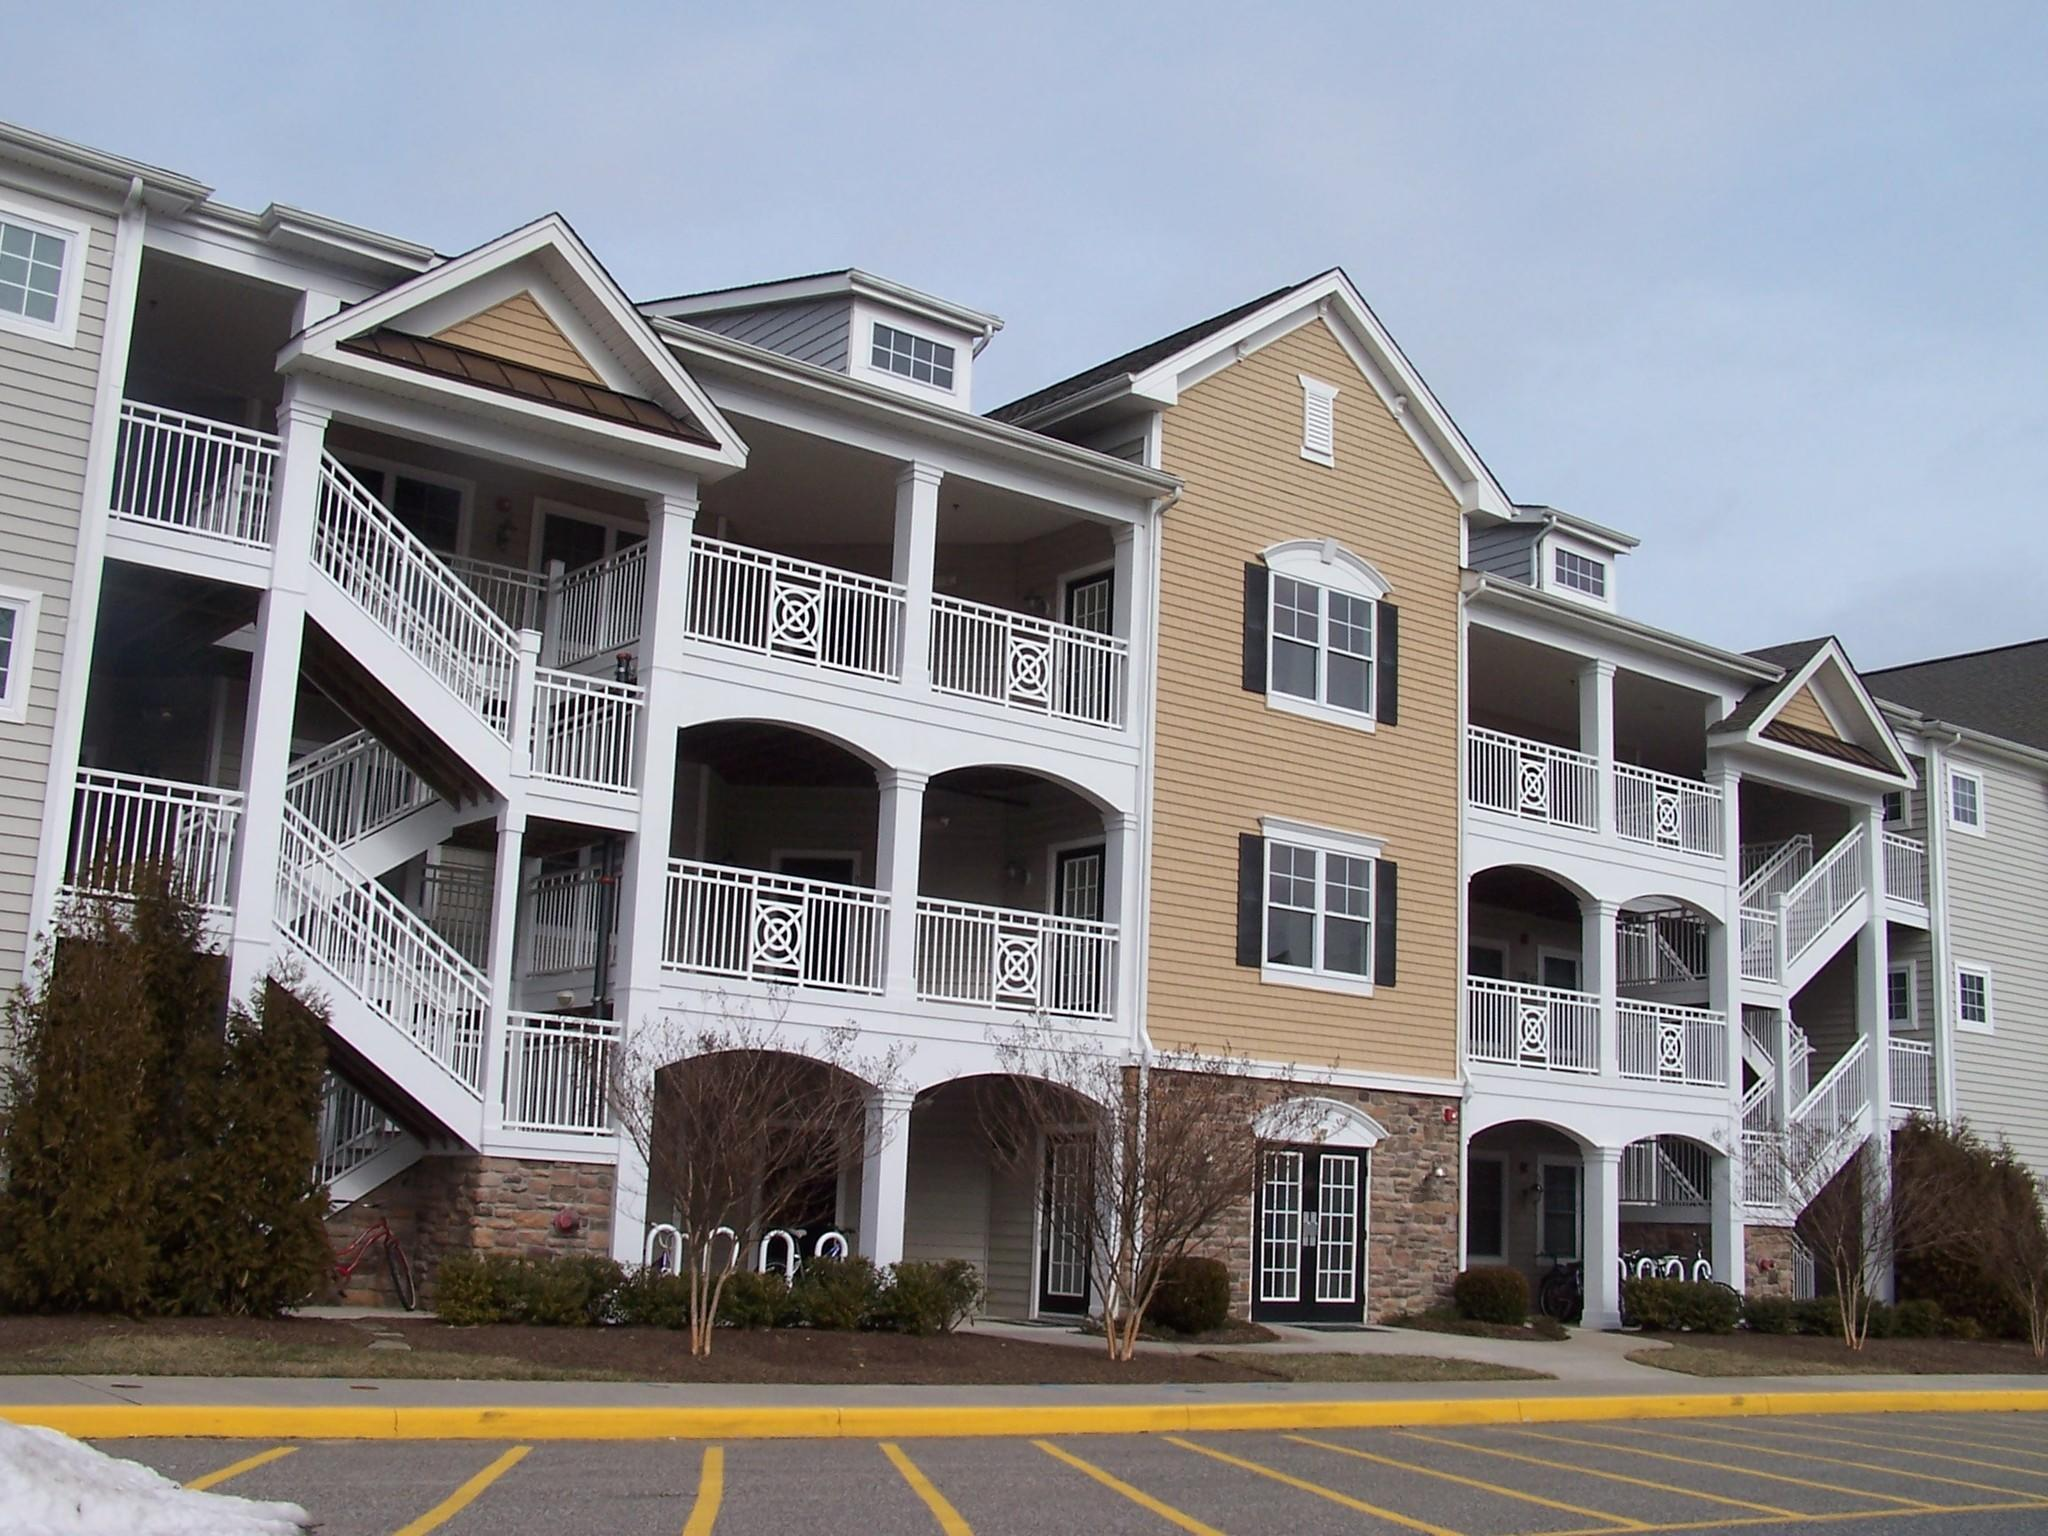 This Rehoboth Beach Condo Complex Is Less Than 2 Miles From The With All Of